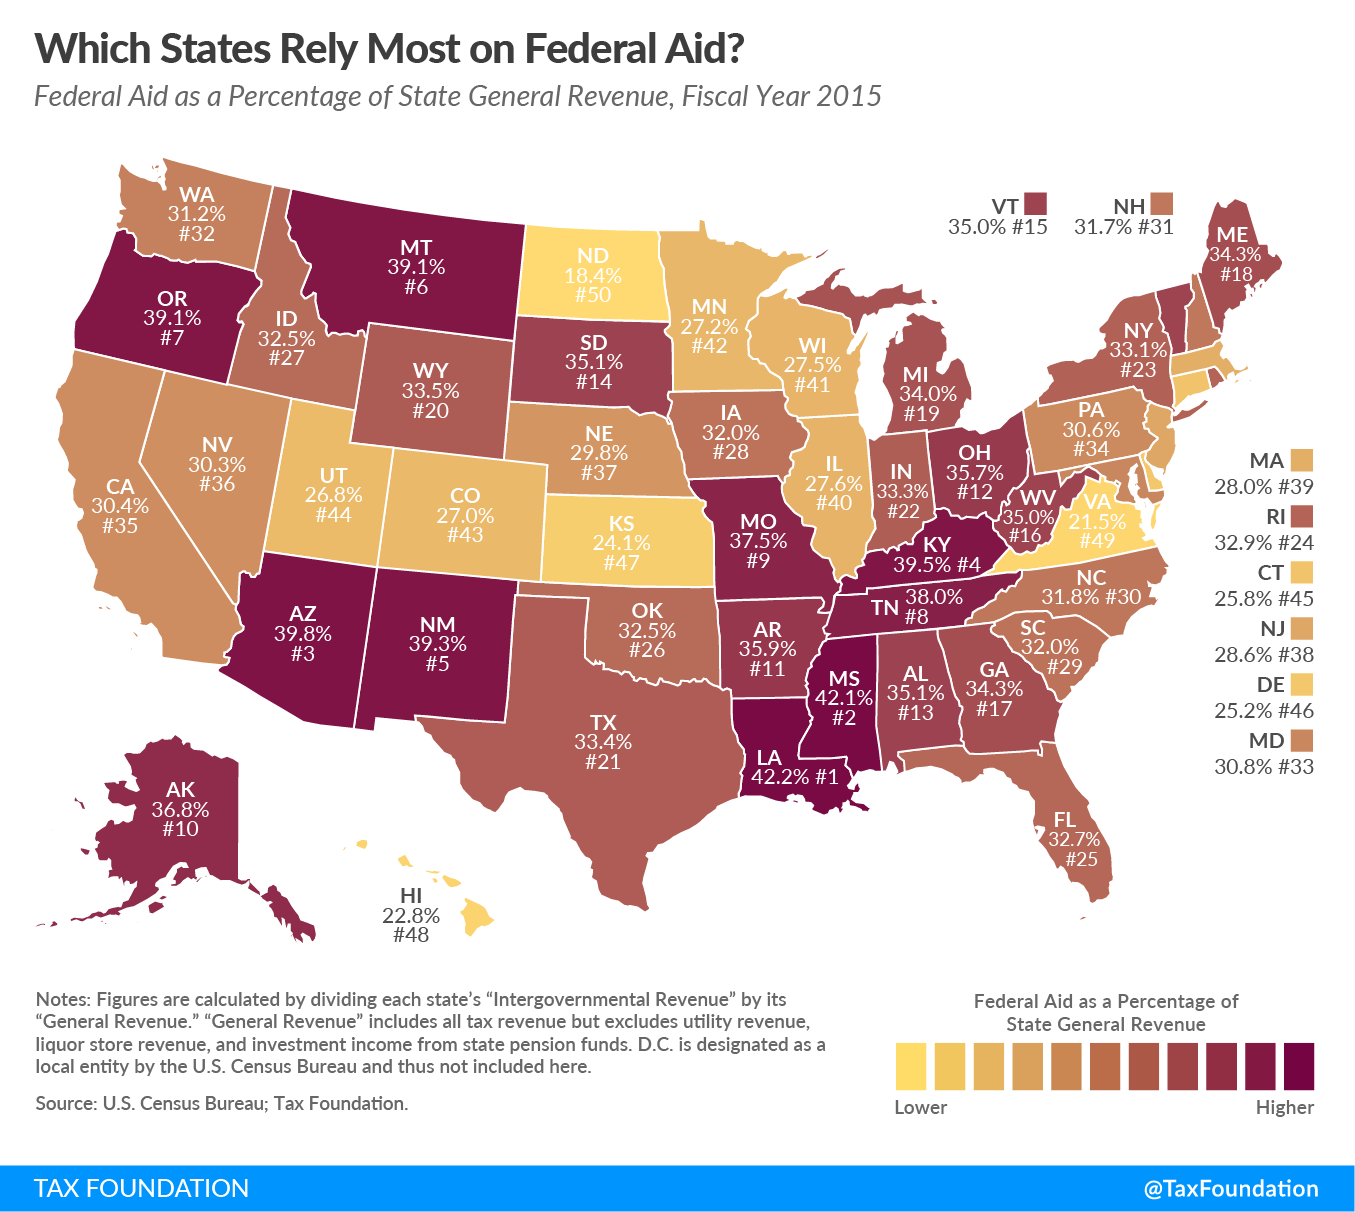 Federal Aid as a Percentage of State General Revenue, Fiscal Year 2015